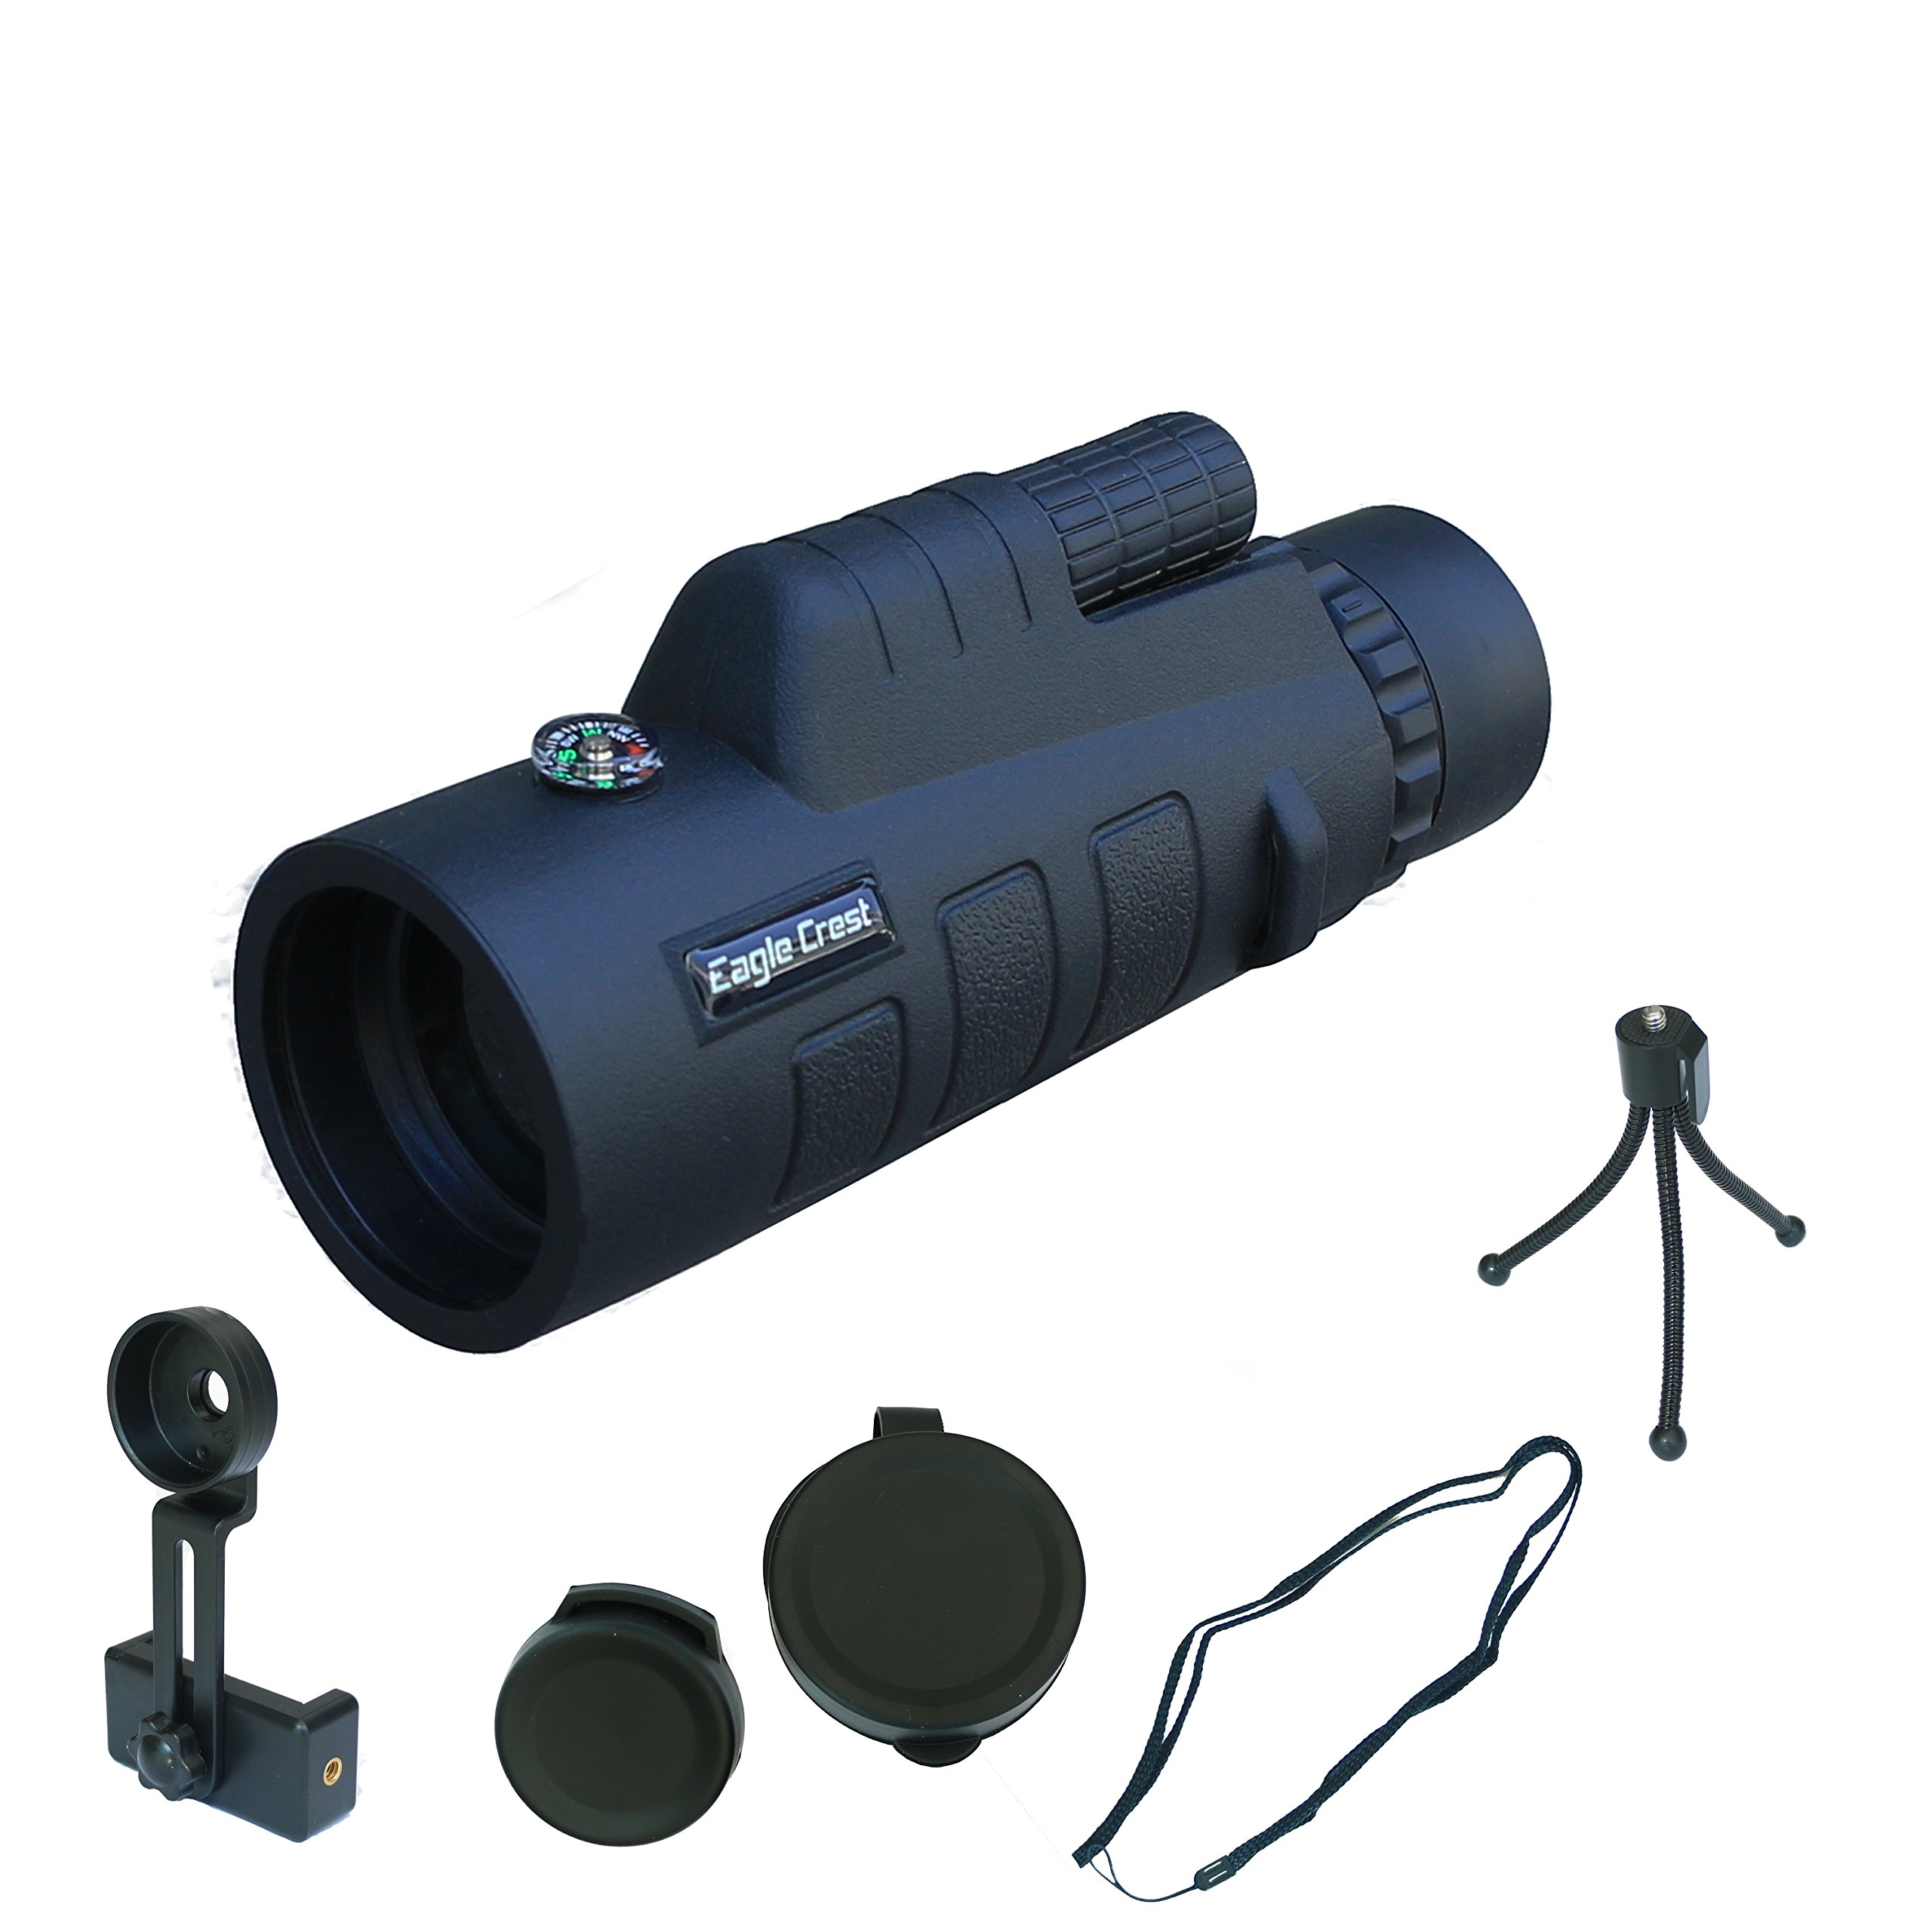 Monocular Telescope, 12X50 Monocular Scope High Power Monocular Telescope 12×50 Waterproof Monocular Scope with Tripod Smartphone Holder for Birdwatching/ Hunting/ Hiking / Golf/ Concert by Farspy